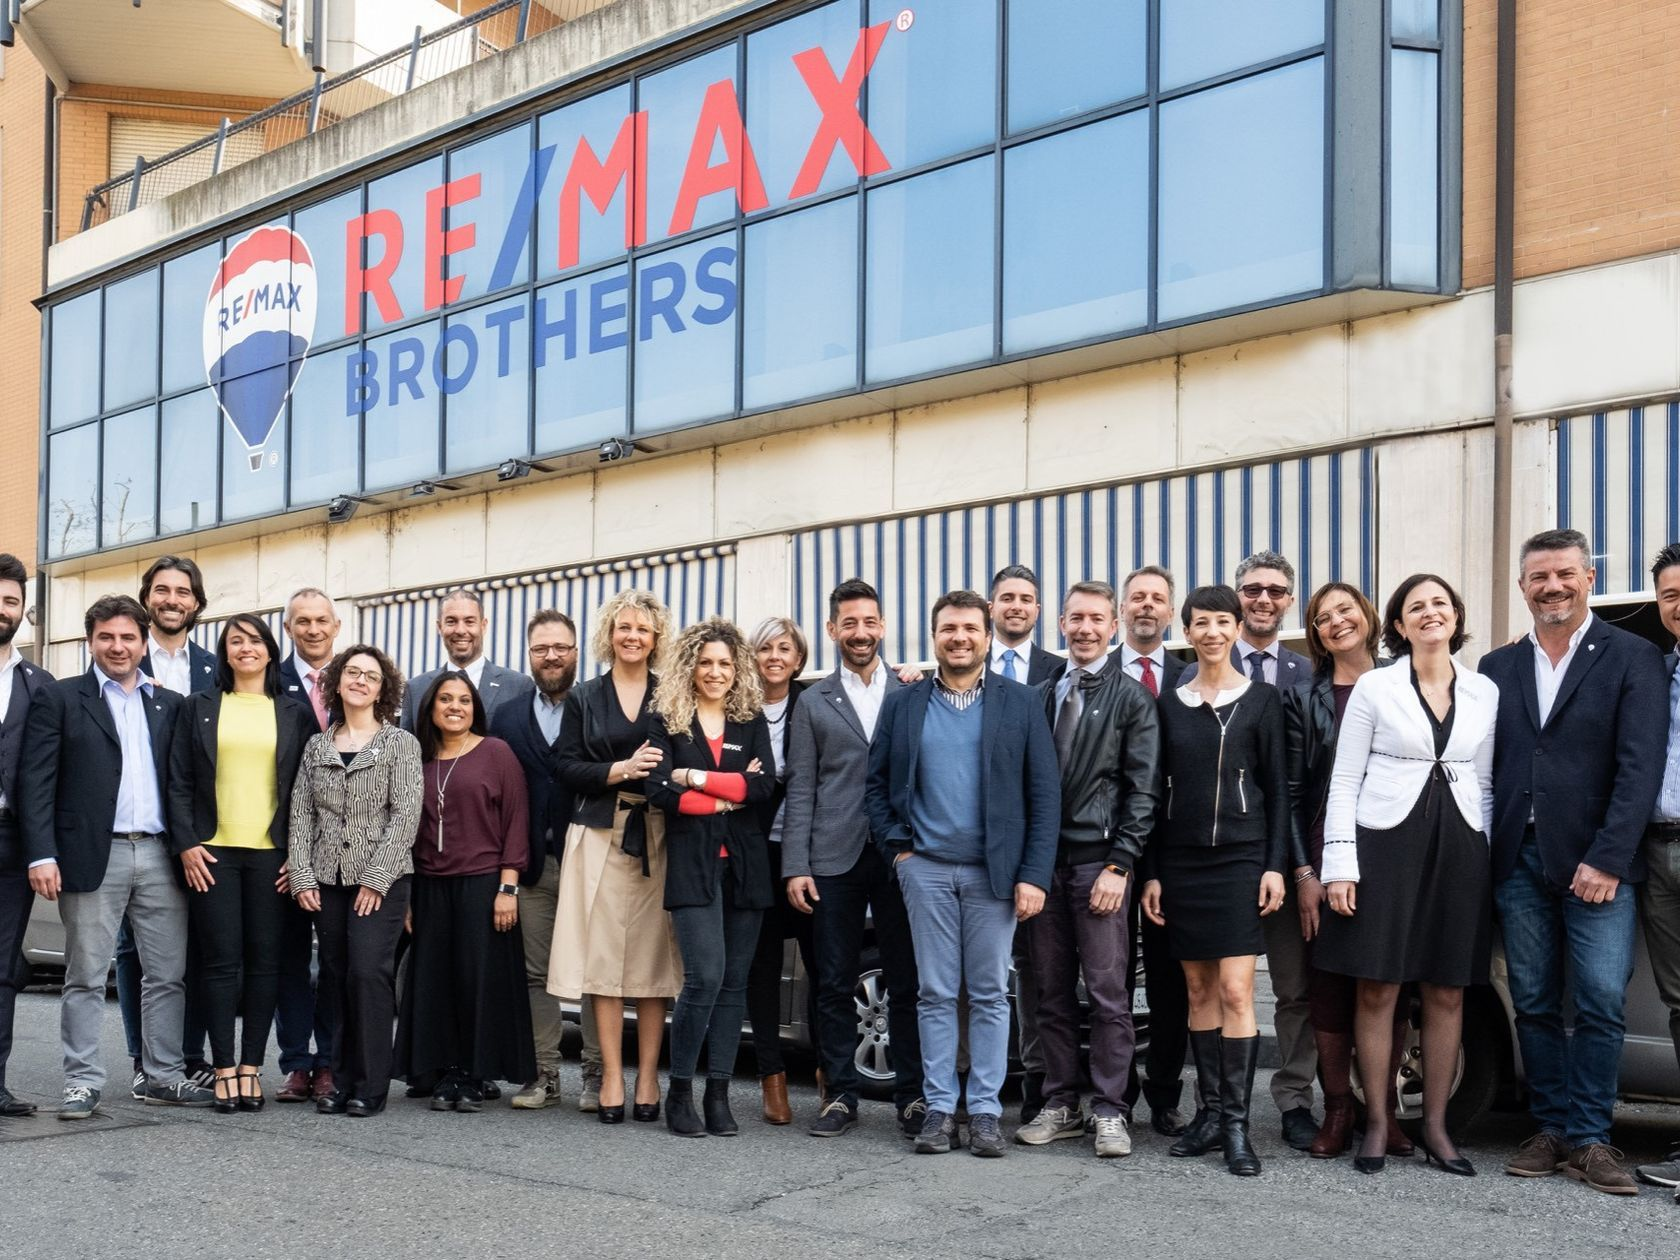 RE/MAX Brothers Torino - Foto 2